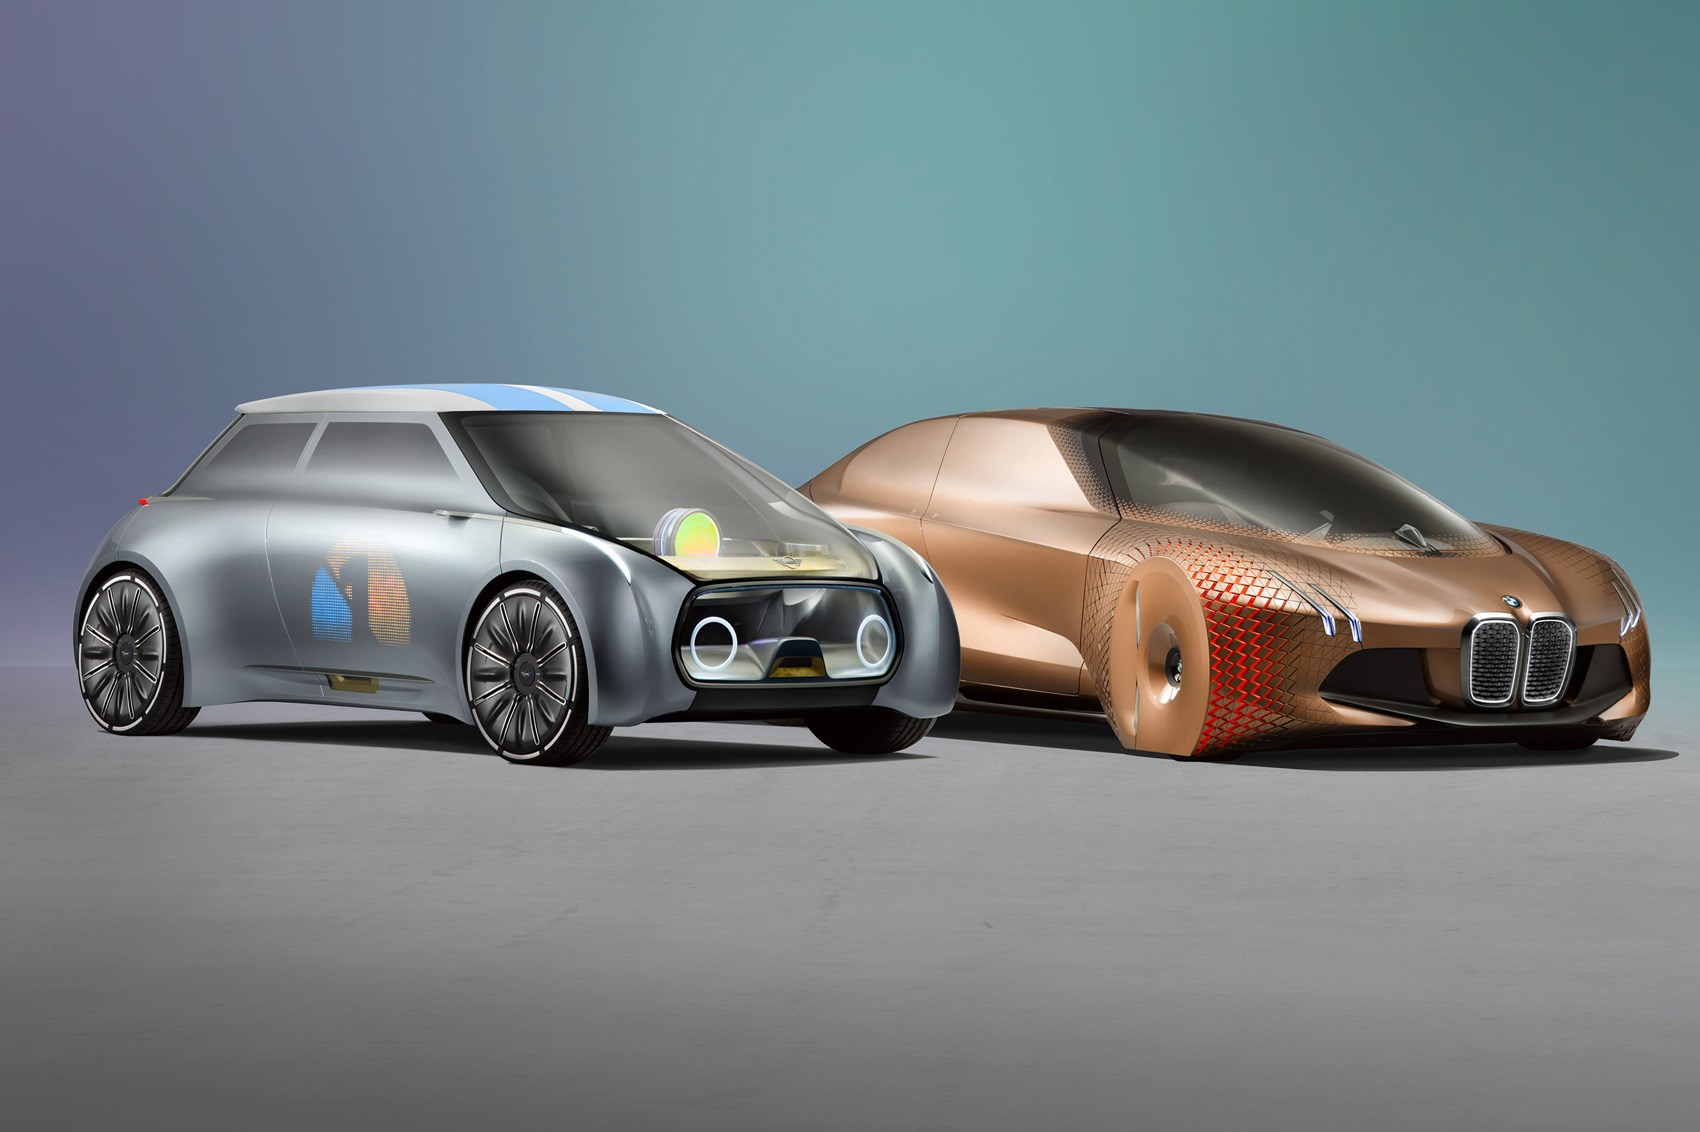 bmw u0026 39 s electric offensive  25 hybrids and evs by 2025